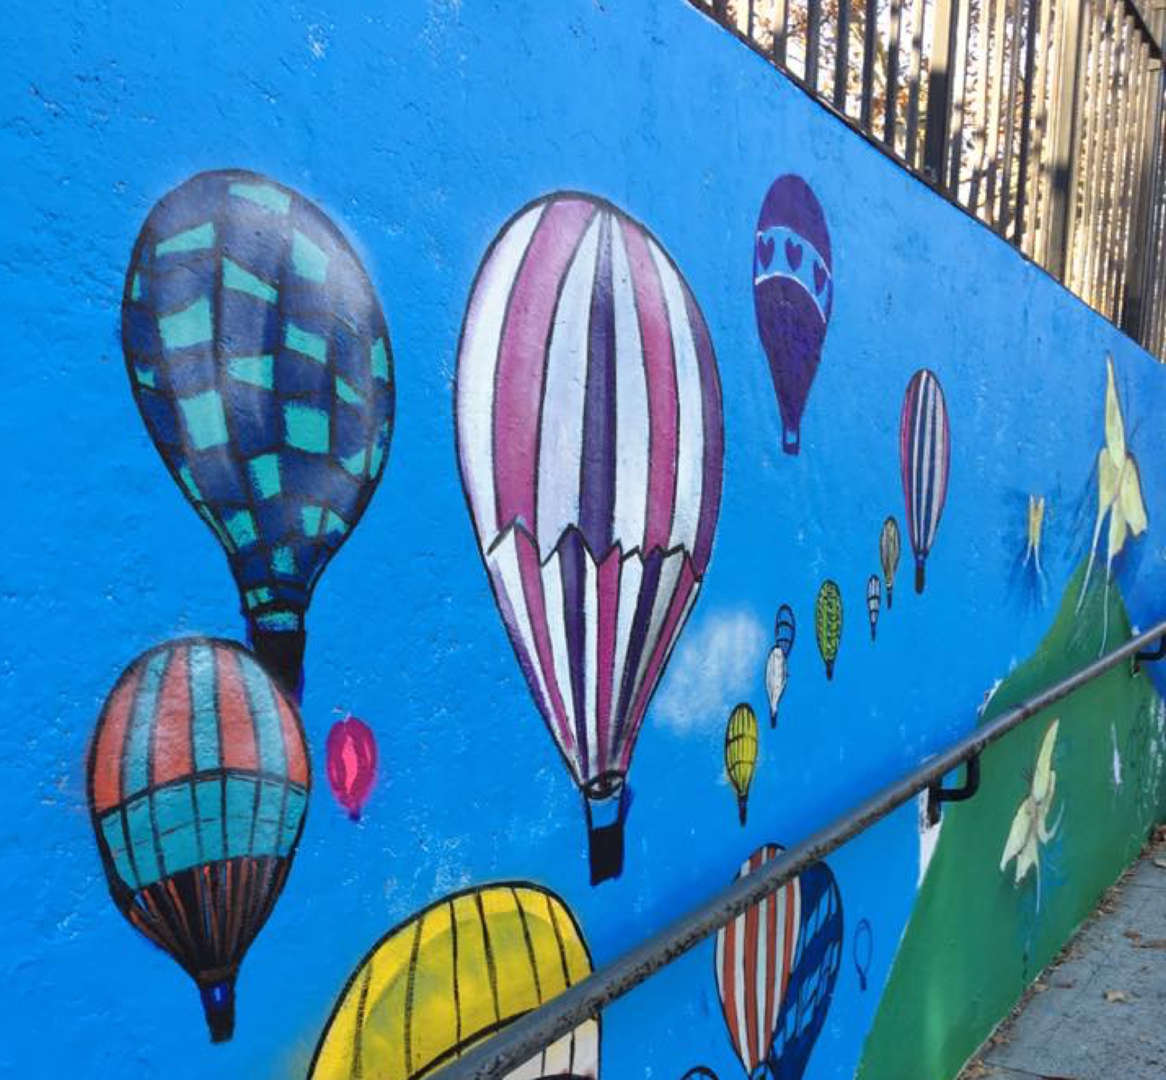 Mosholu Playground Hot Air Balloons